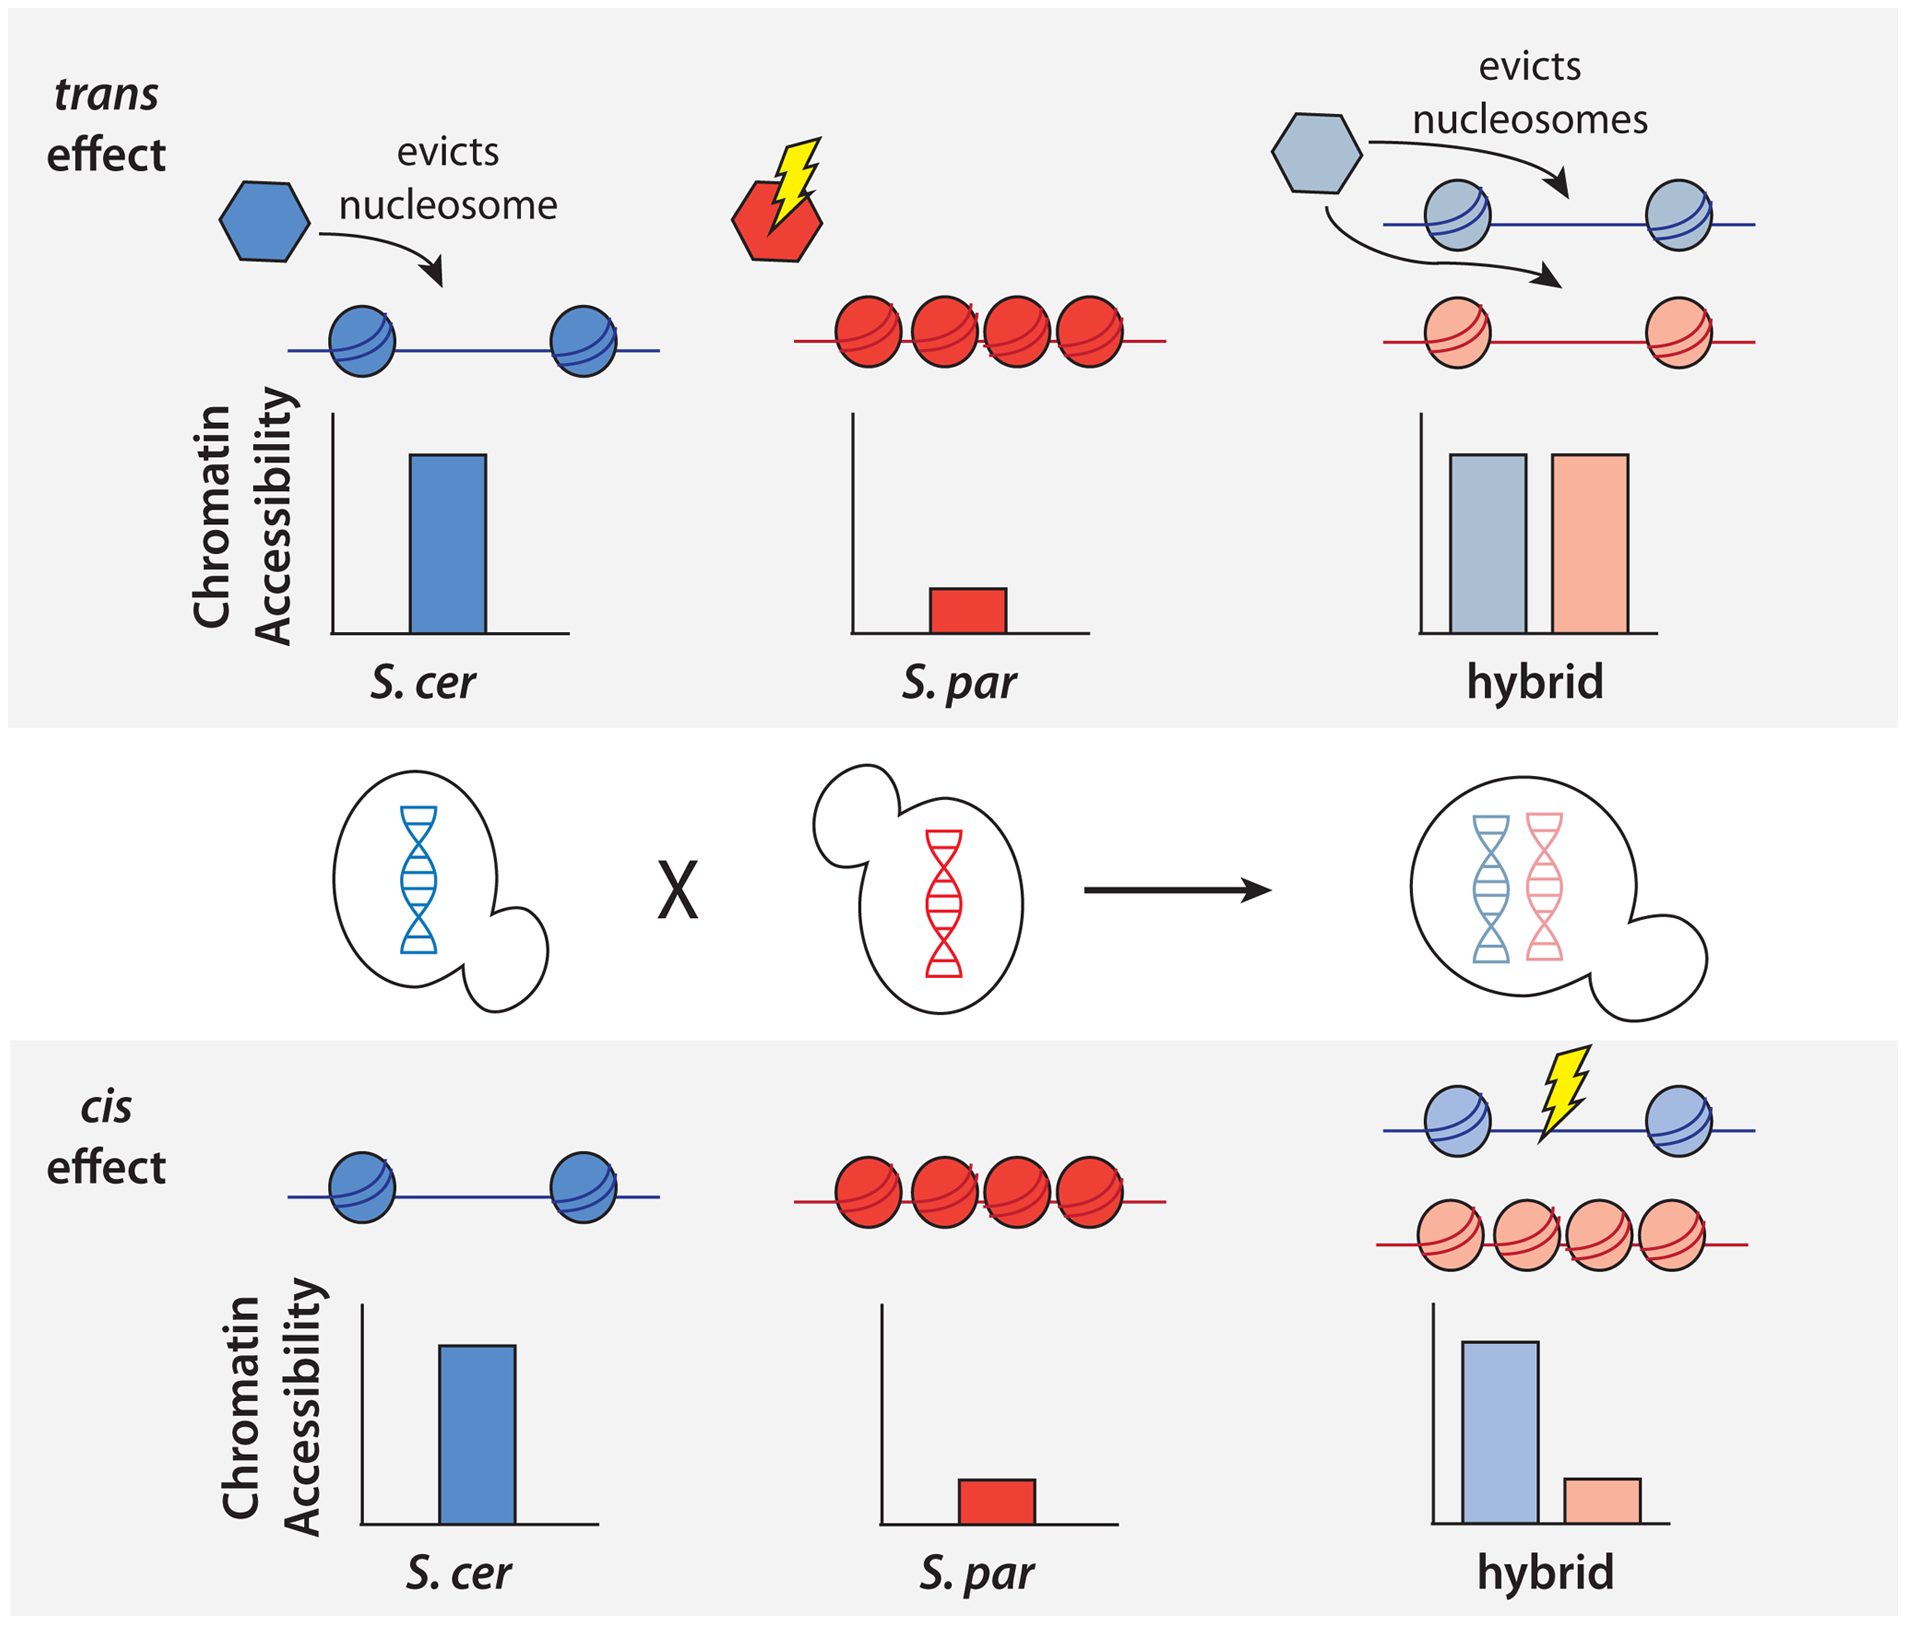 Schematic of approach to detect <i>cis</i> and <i>trans</i> effects on chromatin accessibility.